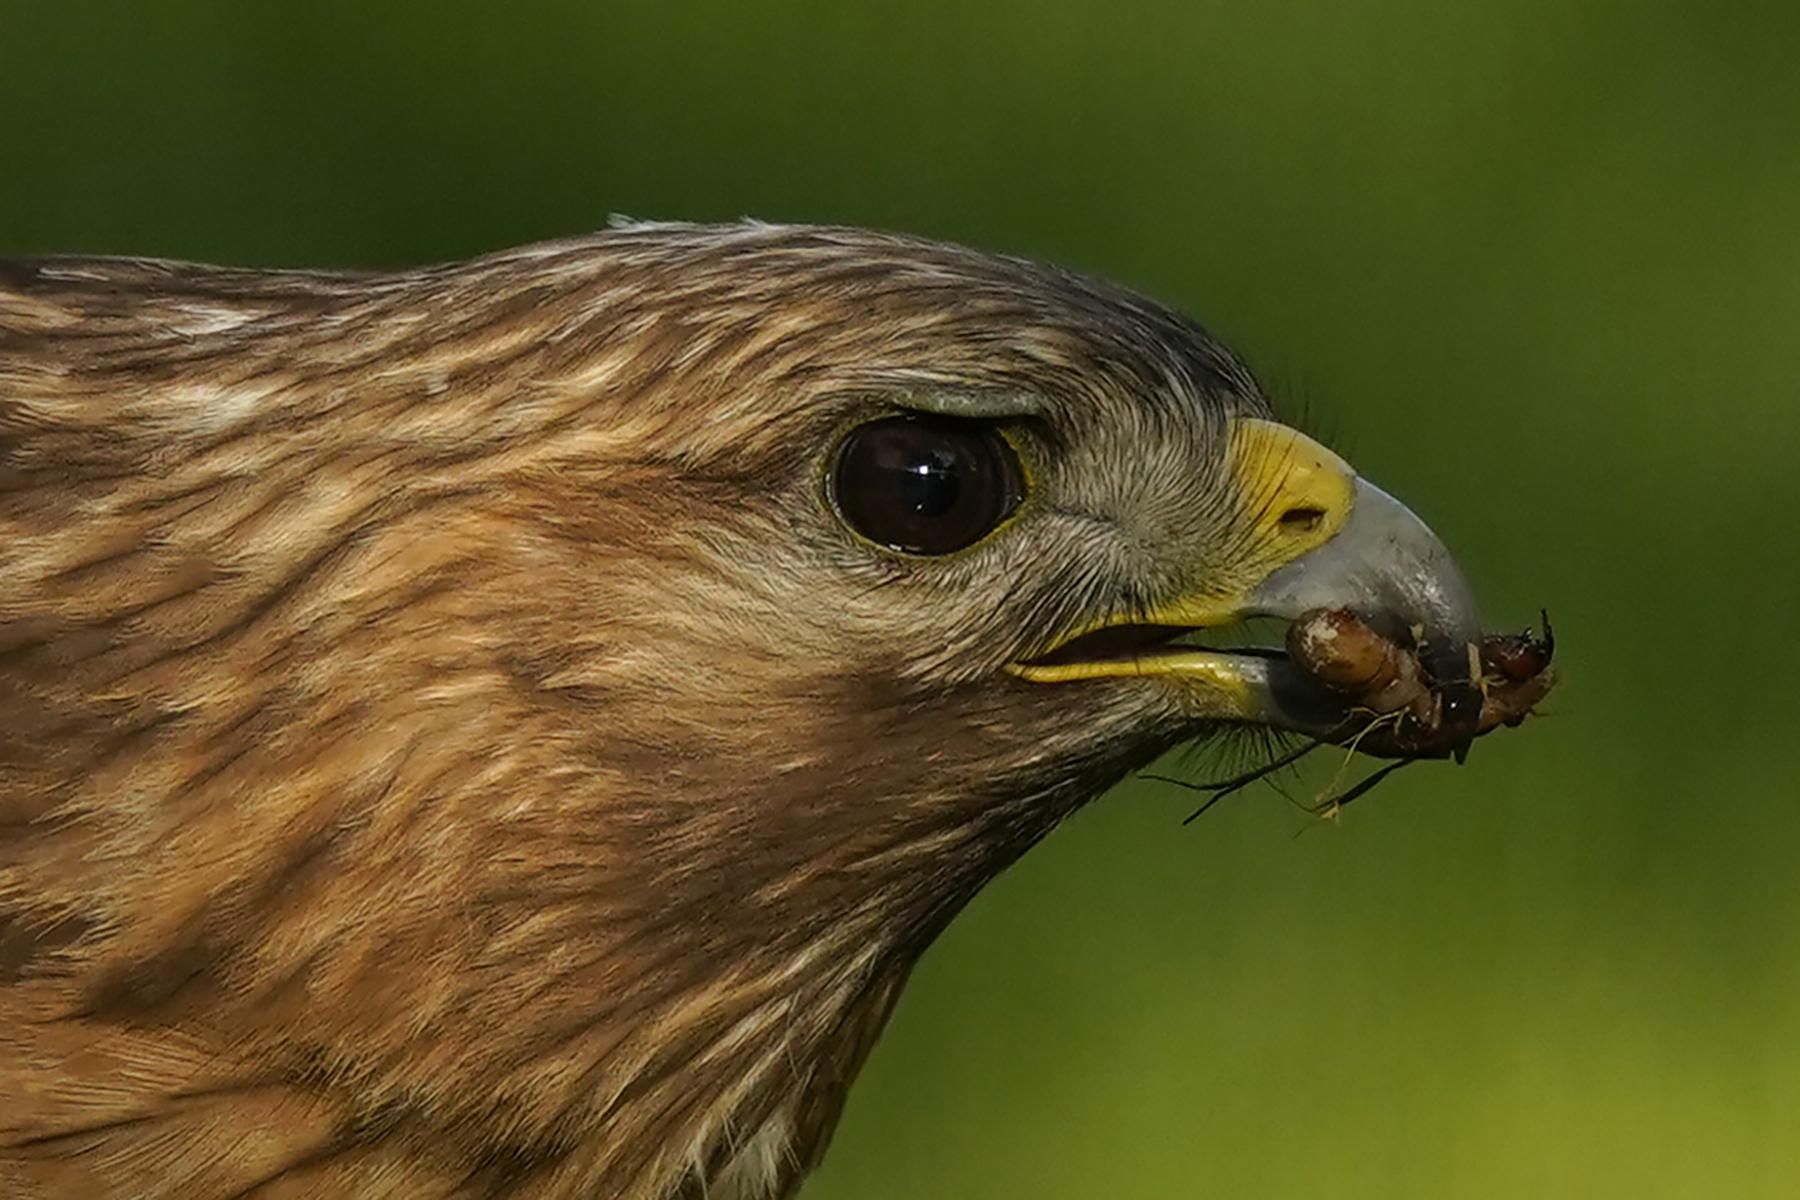 A red-shouldered hawk holds a cicada nymph in its beak as it feeds in a lawn, Monday, May 17, 2021, in Columbia, Md. (AP Photo/Carolyn Kaster)